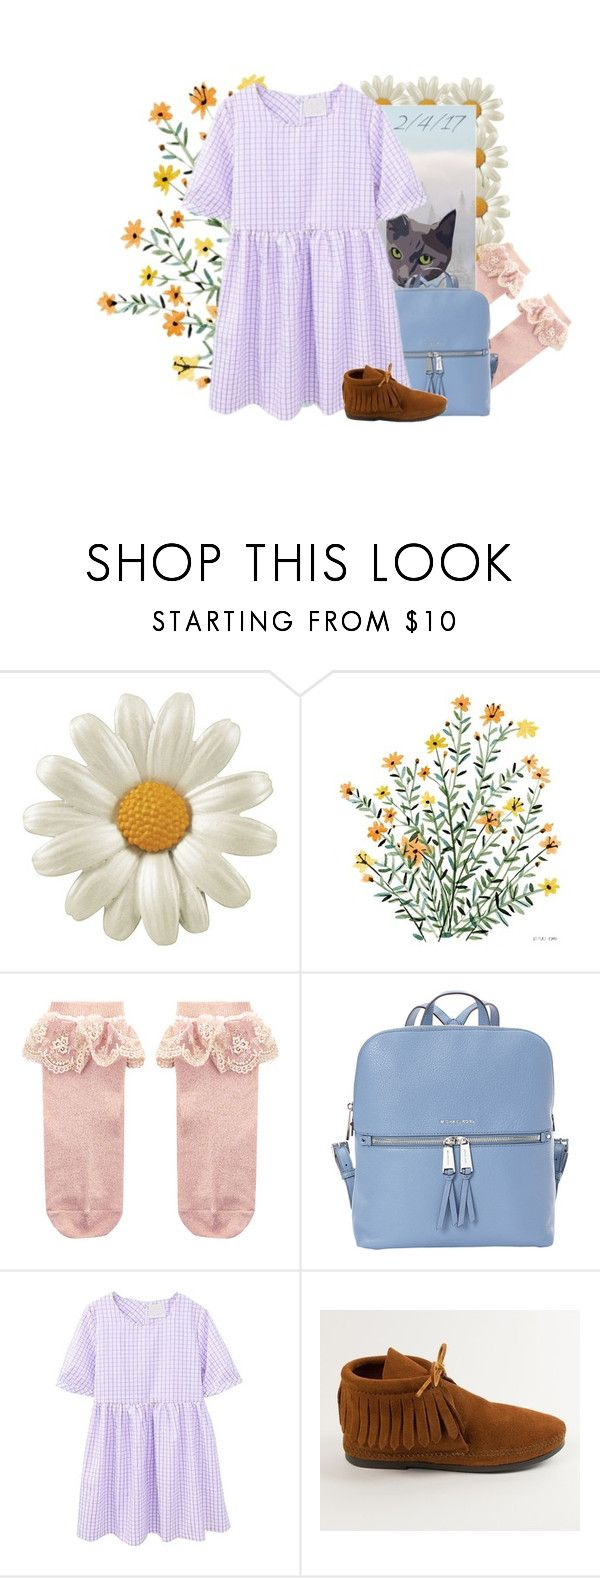 """2/4/17"" by yoyoyoyogangsterbobcat on Polyvore featuring Monsoon, Emma Holmes, MICHAEL Michael Kors and Minnetonka"